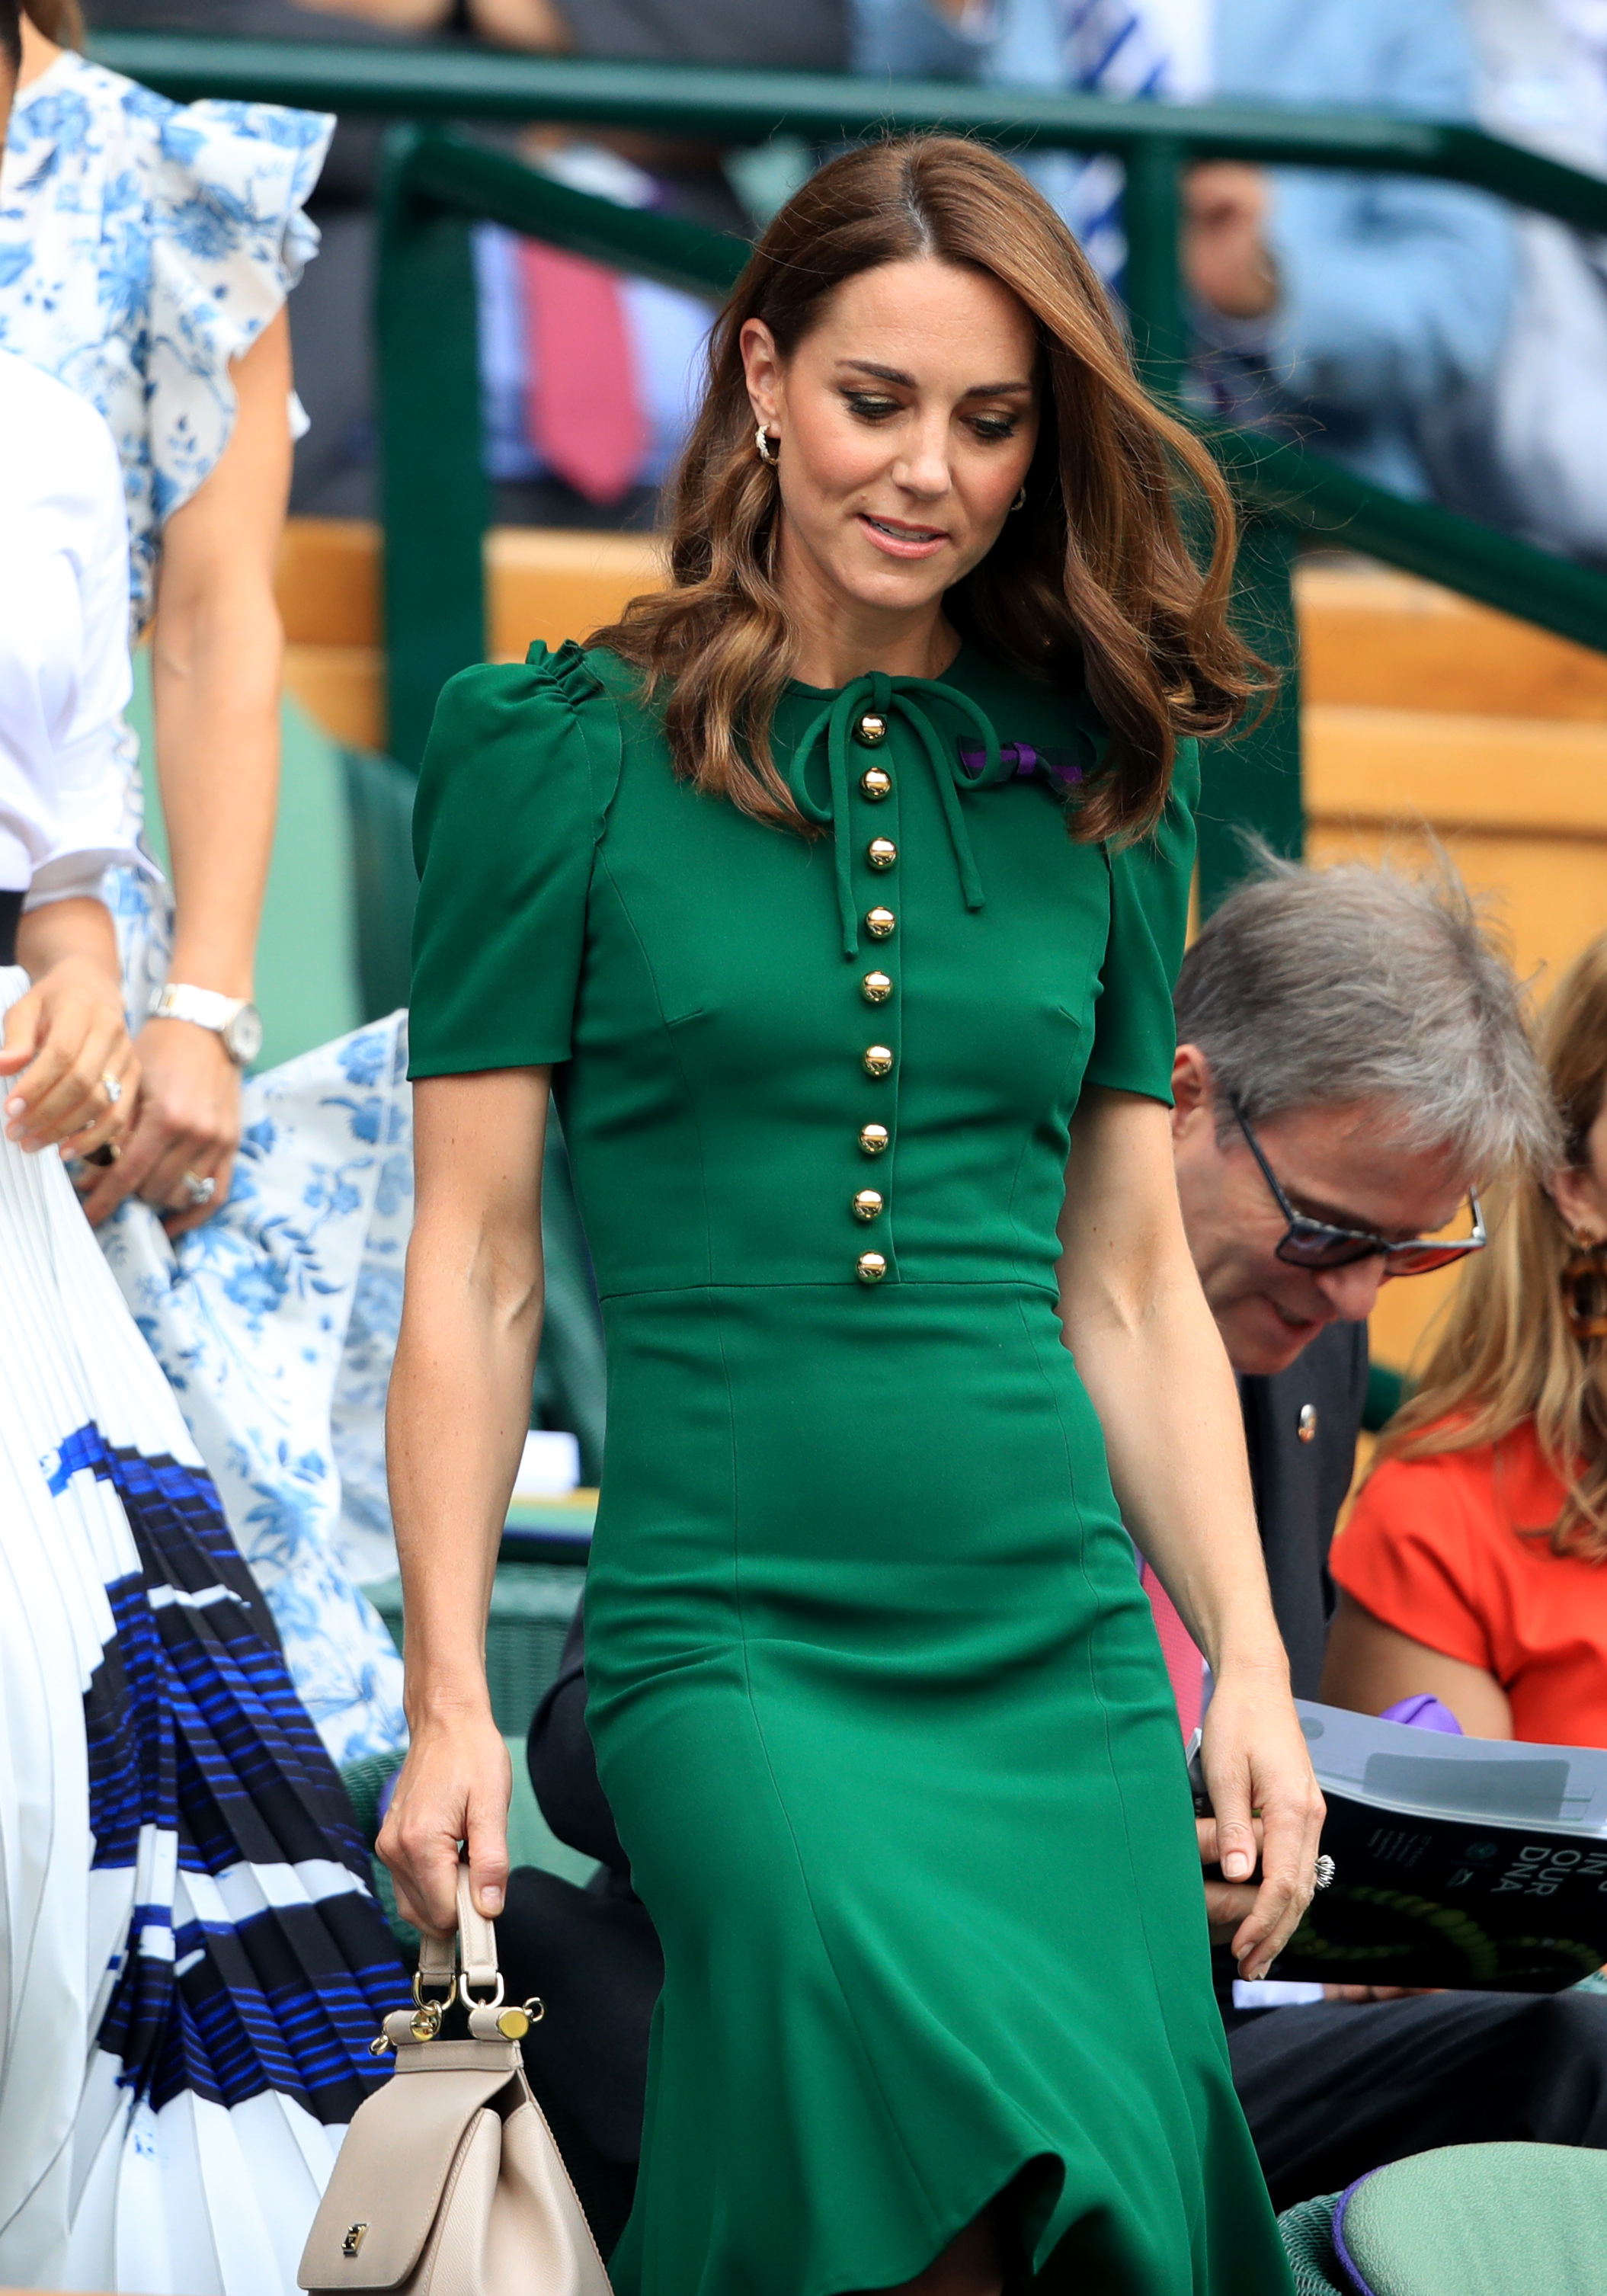 The Duchess of Cambridge on day twelve of the Wimbledon Championships at the All England Lawn Tennis and Croquet Club, Wimbledon.